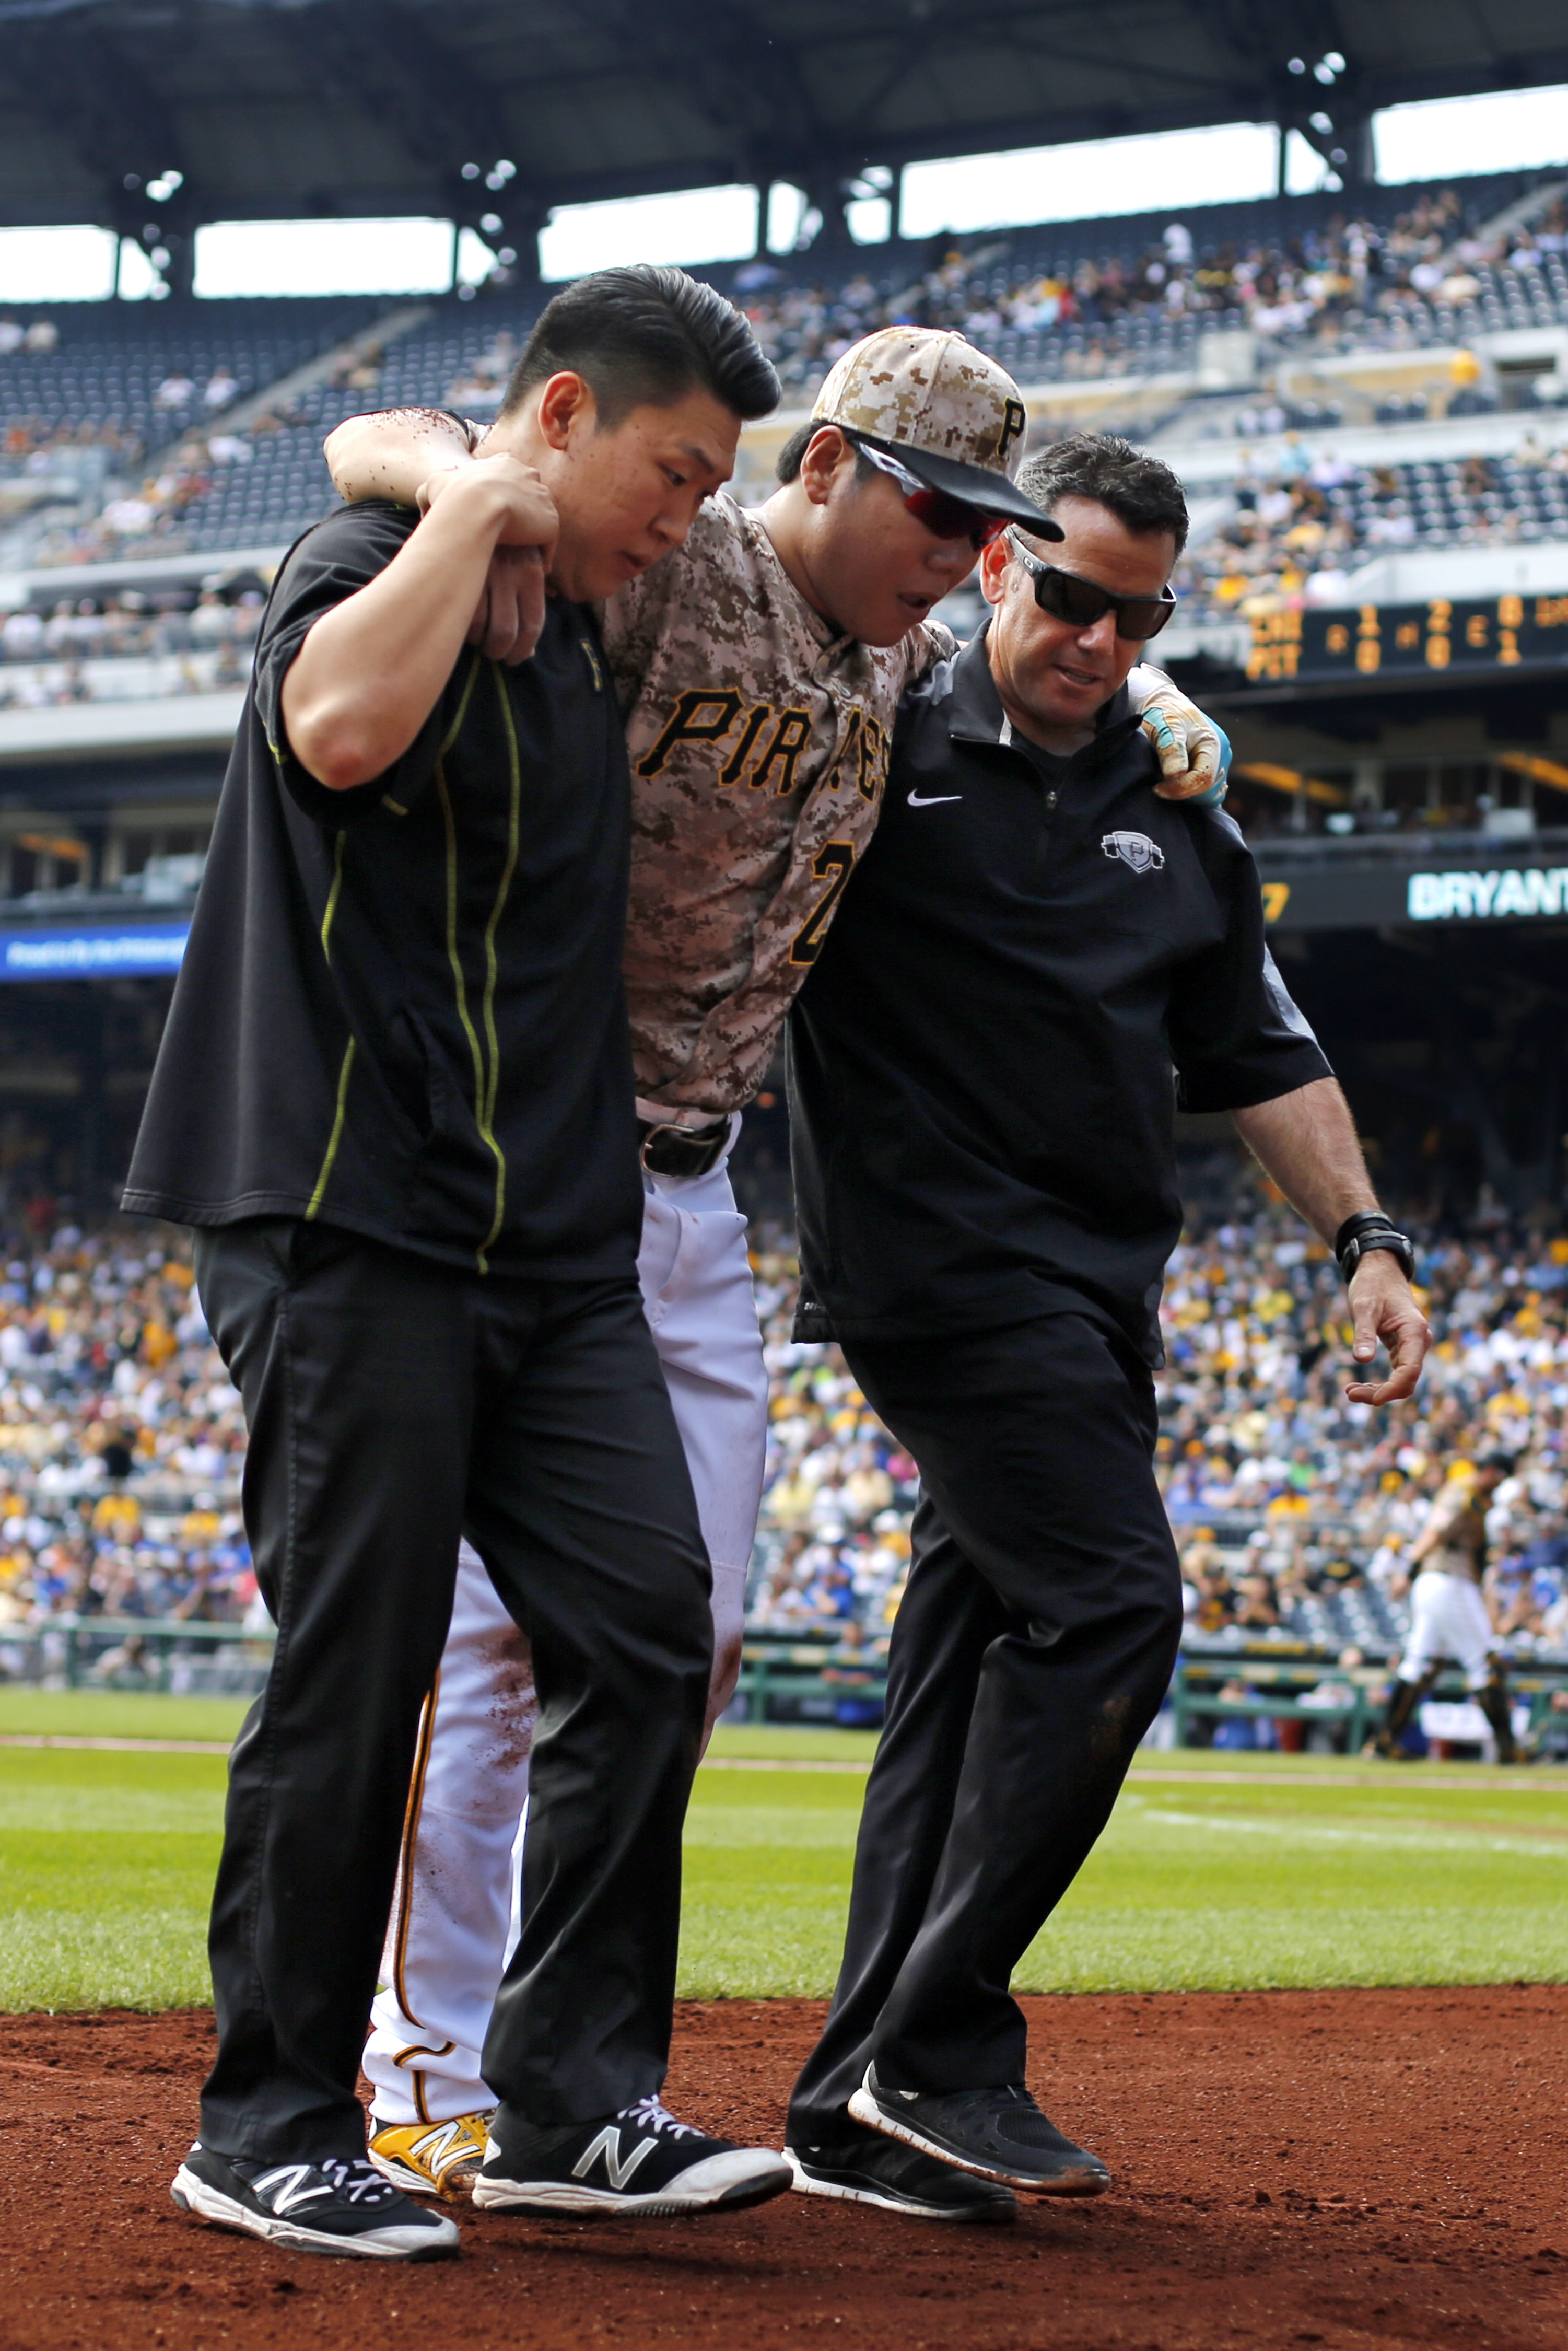 Pittsburgh Pirates' Jung Ho Kang, center, is helped off the field by a team trainer, right, and his interpreter after injuring his left leg turning a double play in the first inning of a baseball game against the Chicago Cubs in Pittsburgh, Thursday, Sept